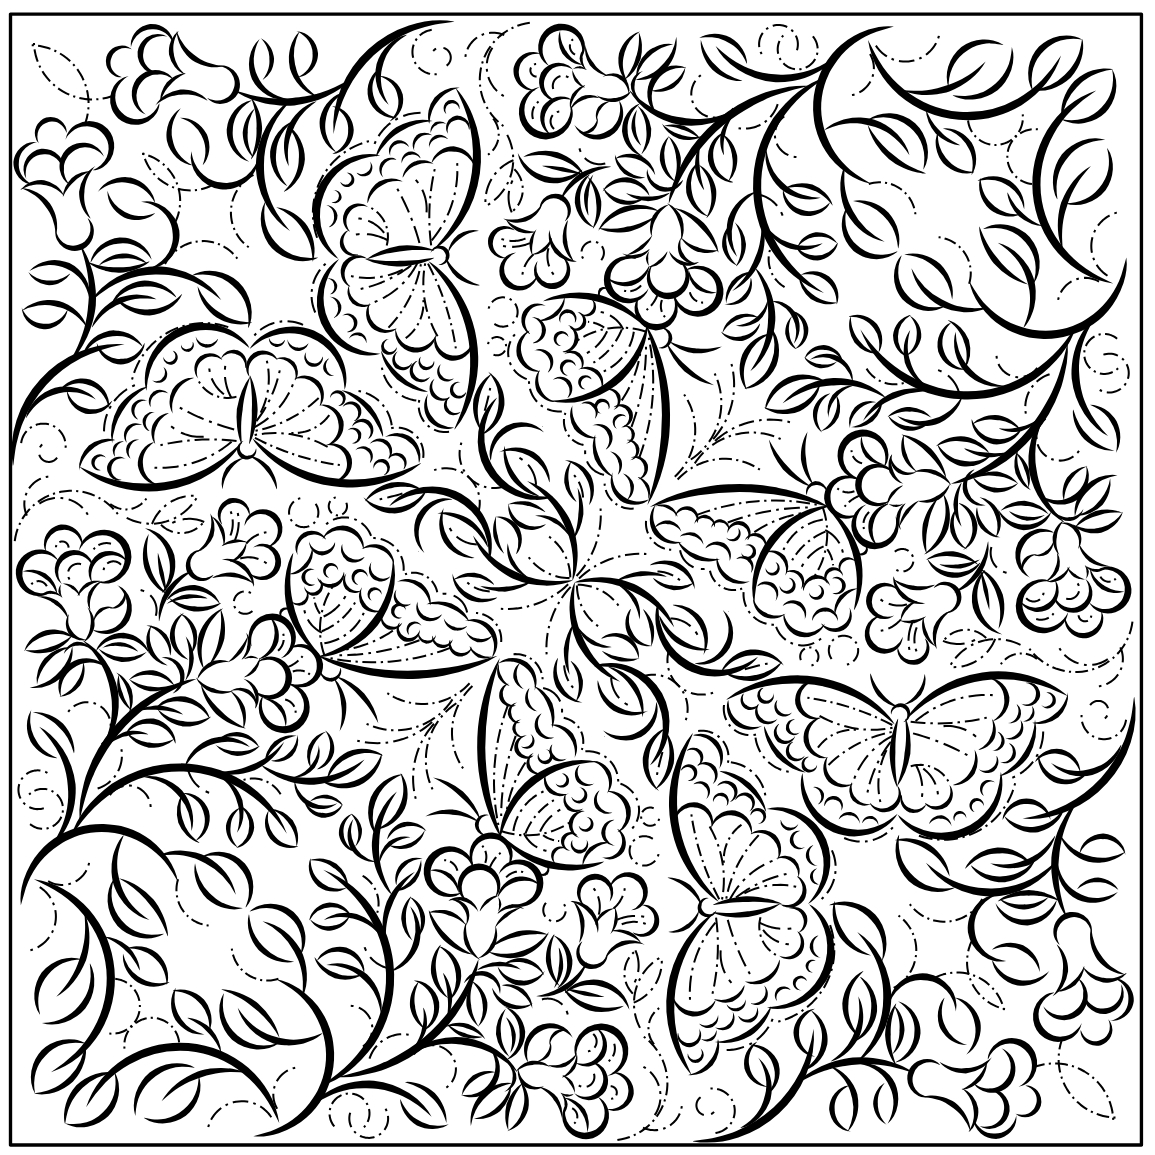 symmetrical coloring pages radial symmetry coloring pages in 2020 collaborative art coloring pages symmetrical